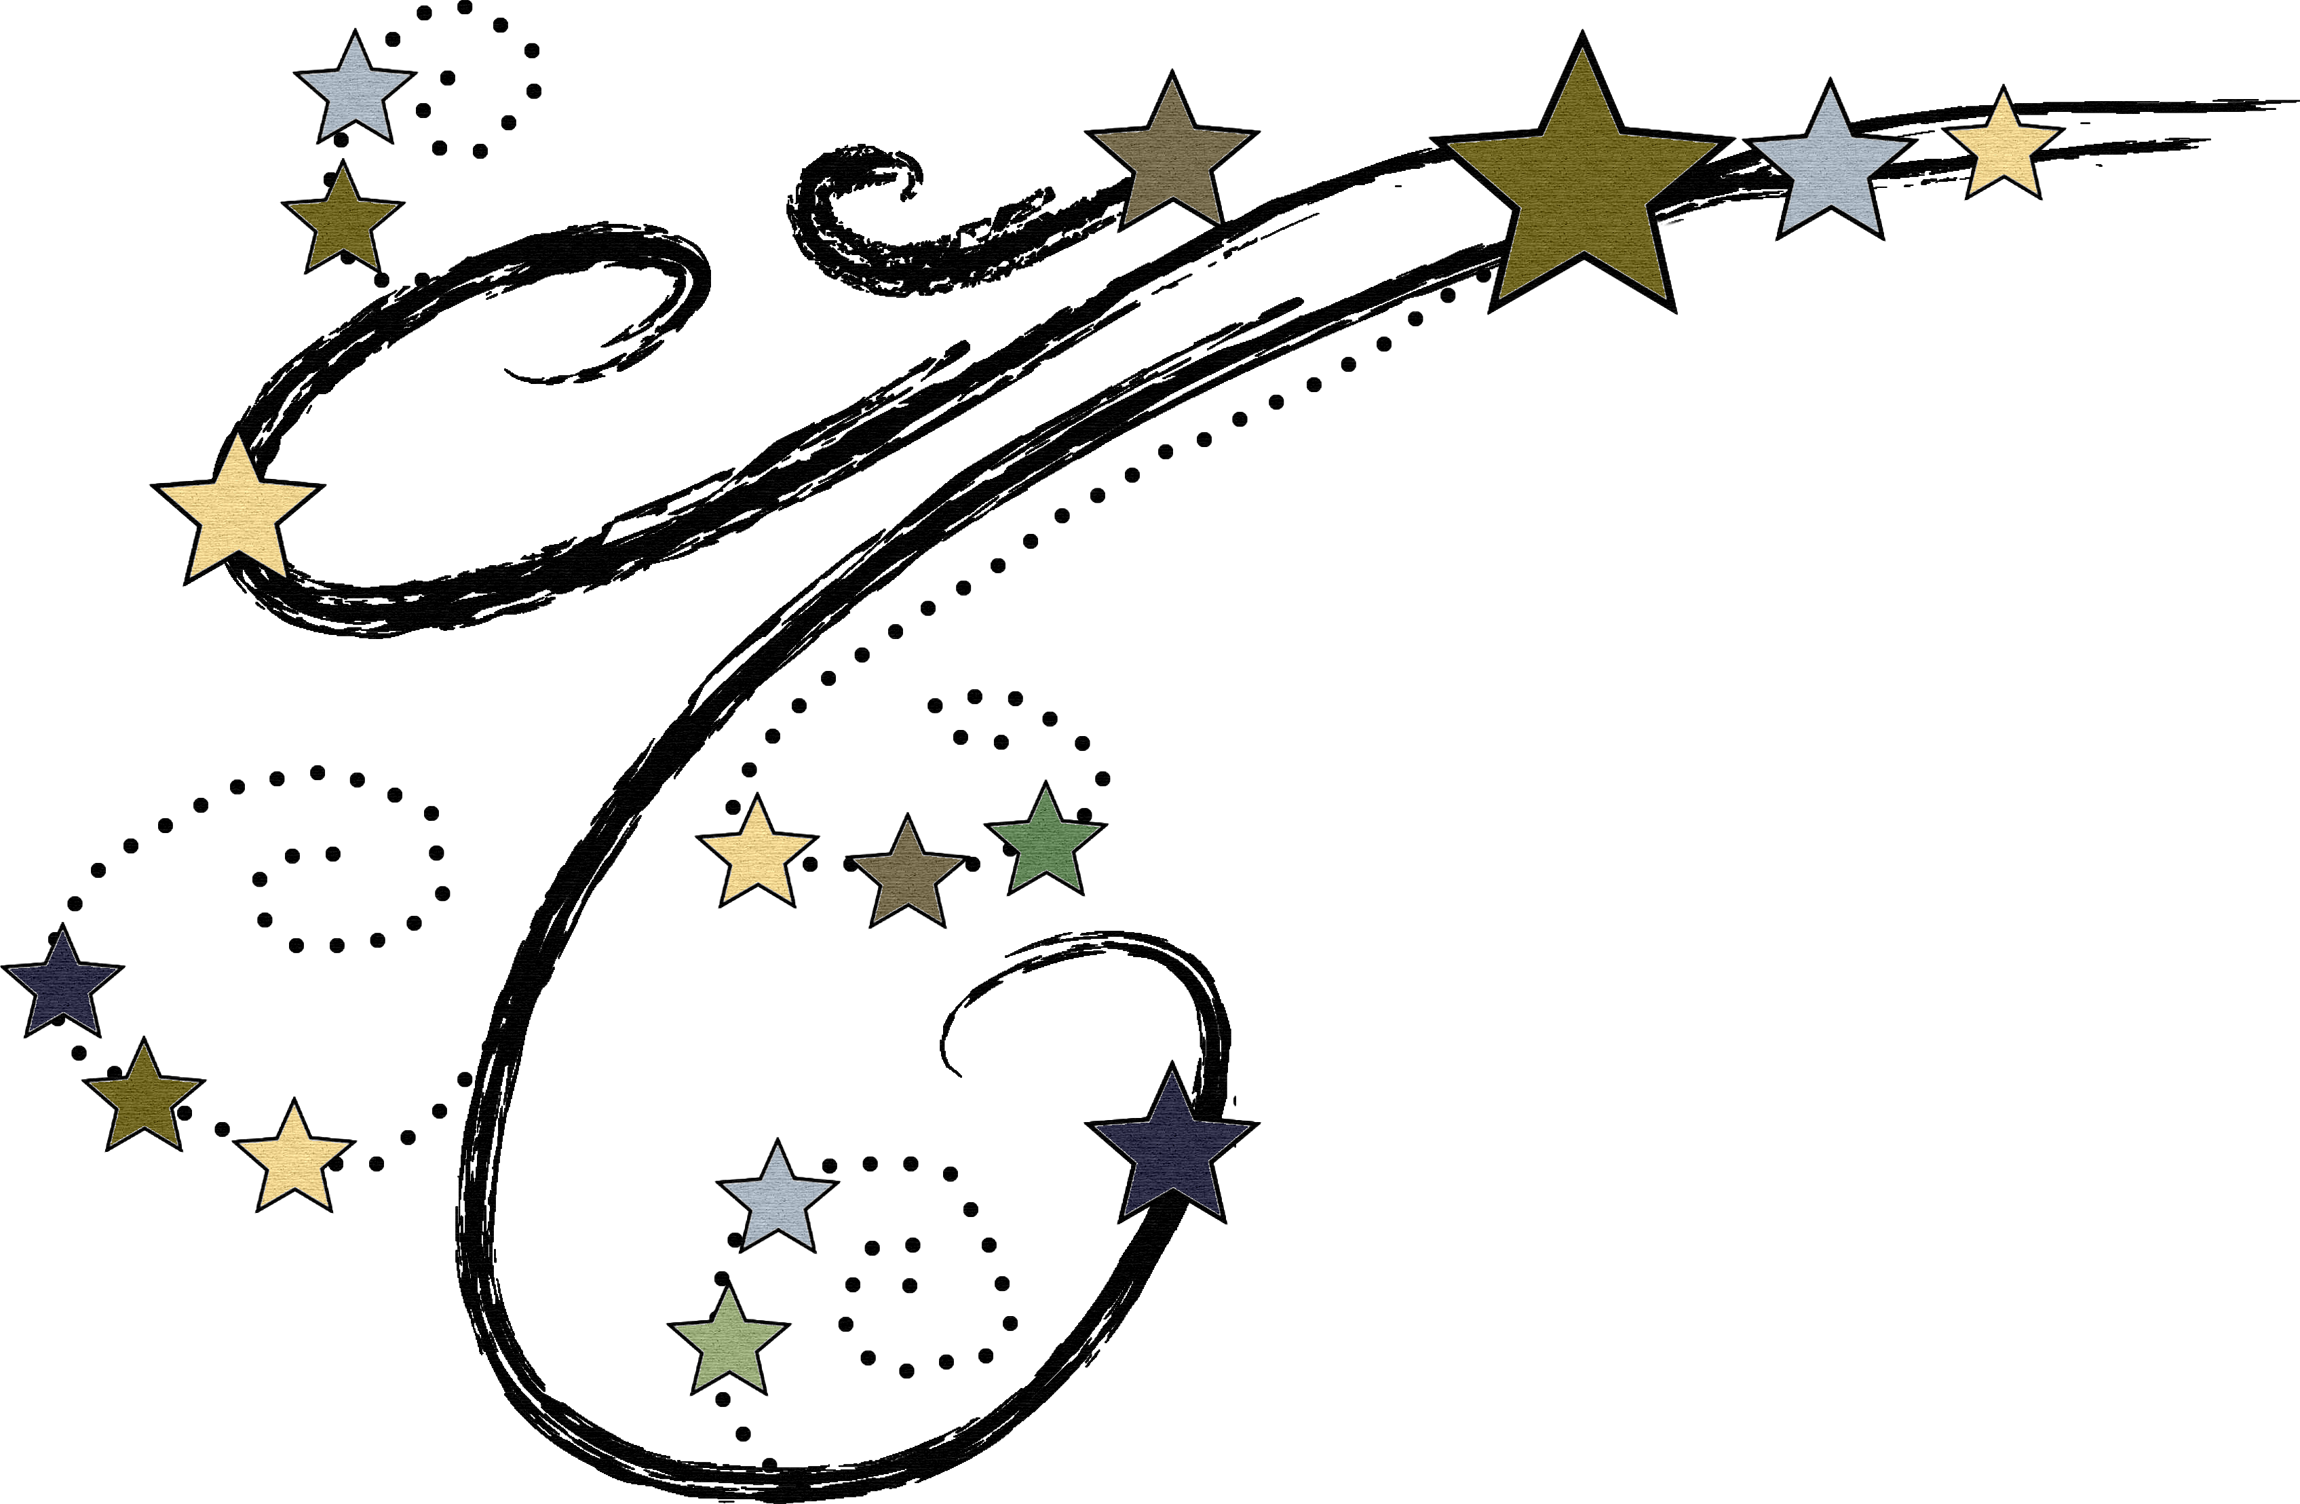 Free shooting star pictures clipart graphic library library 97+ Shooting Star Clipart Free | ClipartLook graphic library library